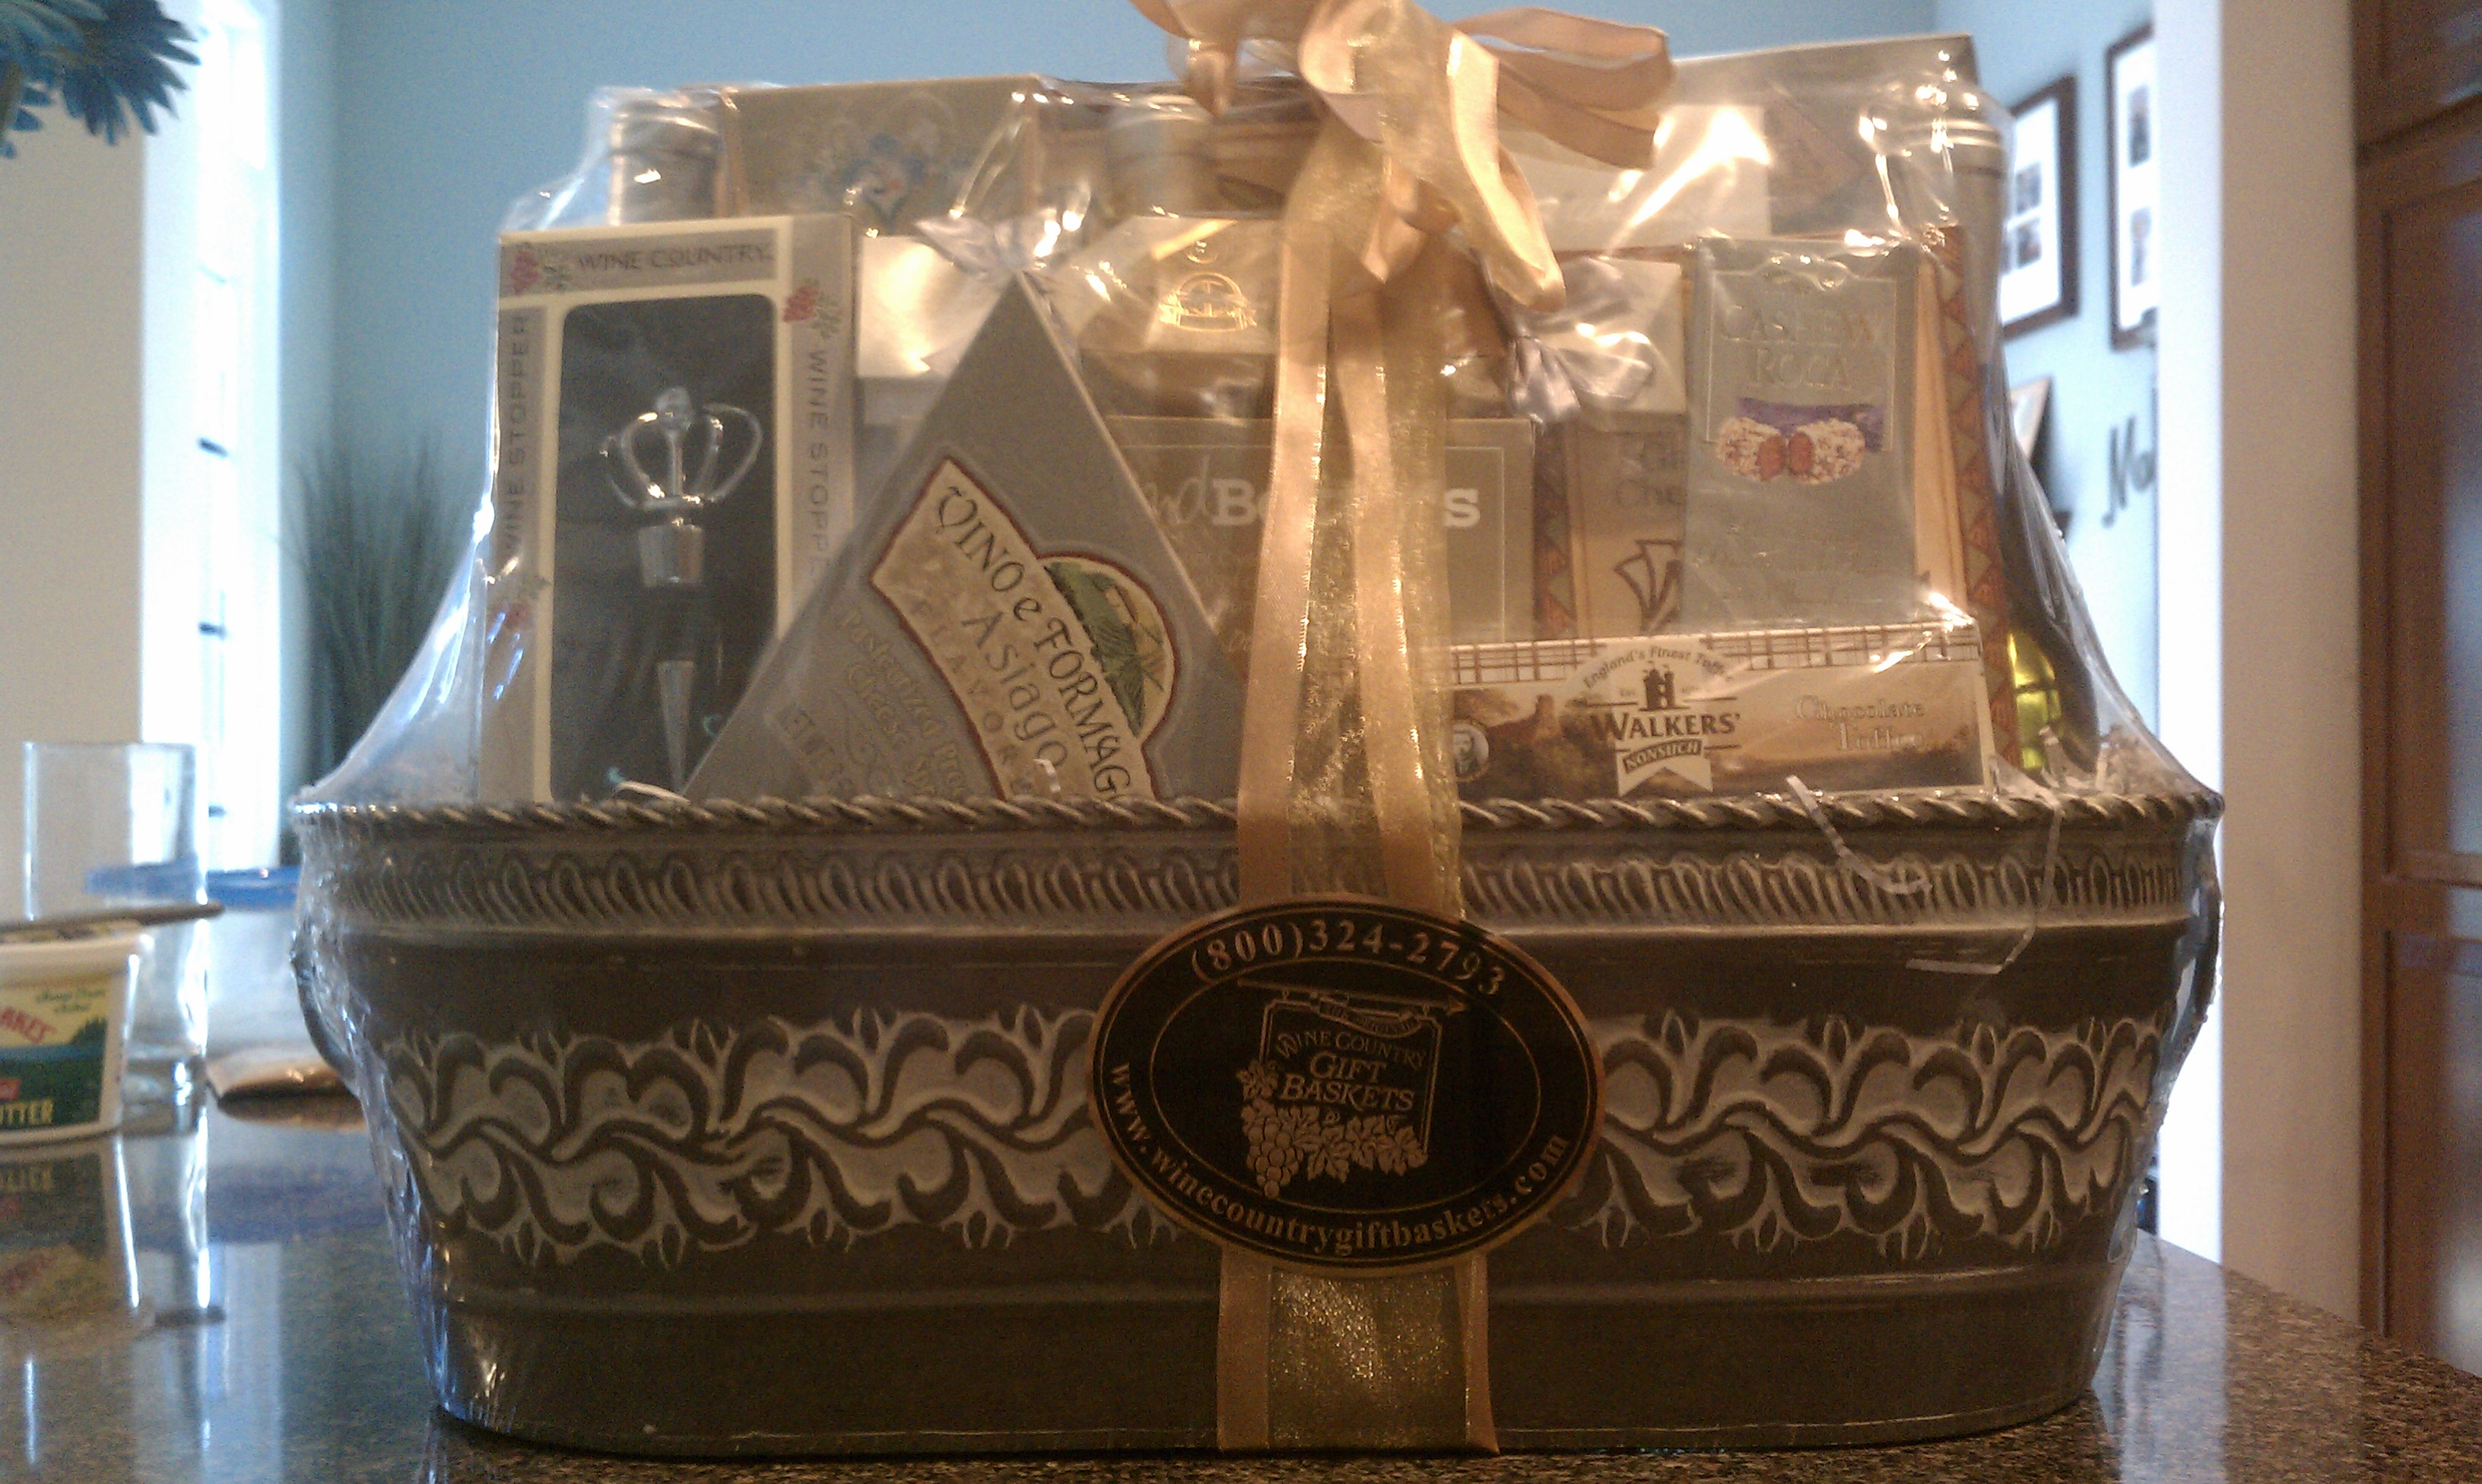 Wine Gift Basket 1 : wine country gift baskets - princetonregatta.org